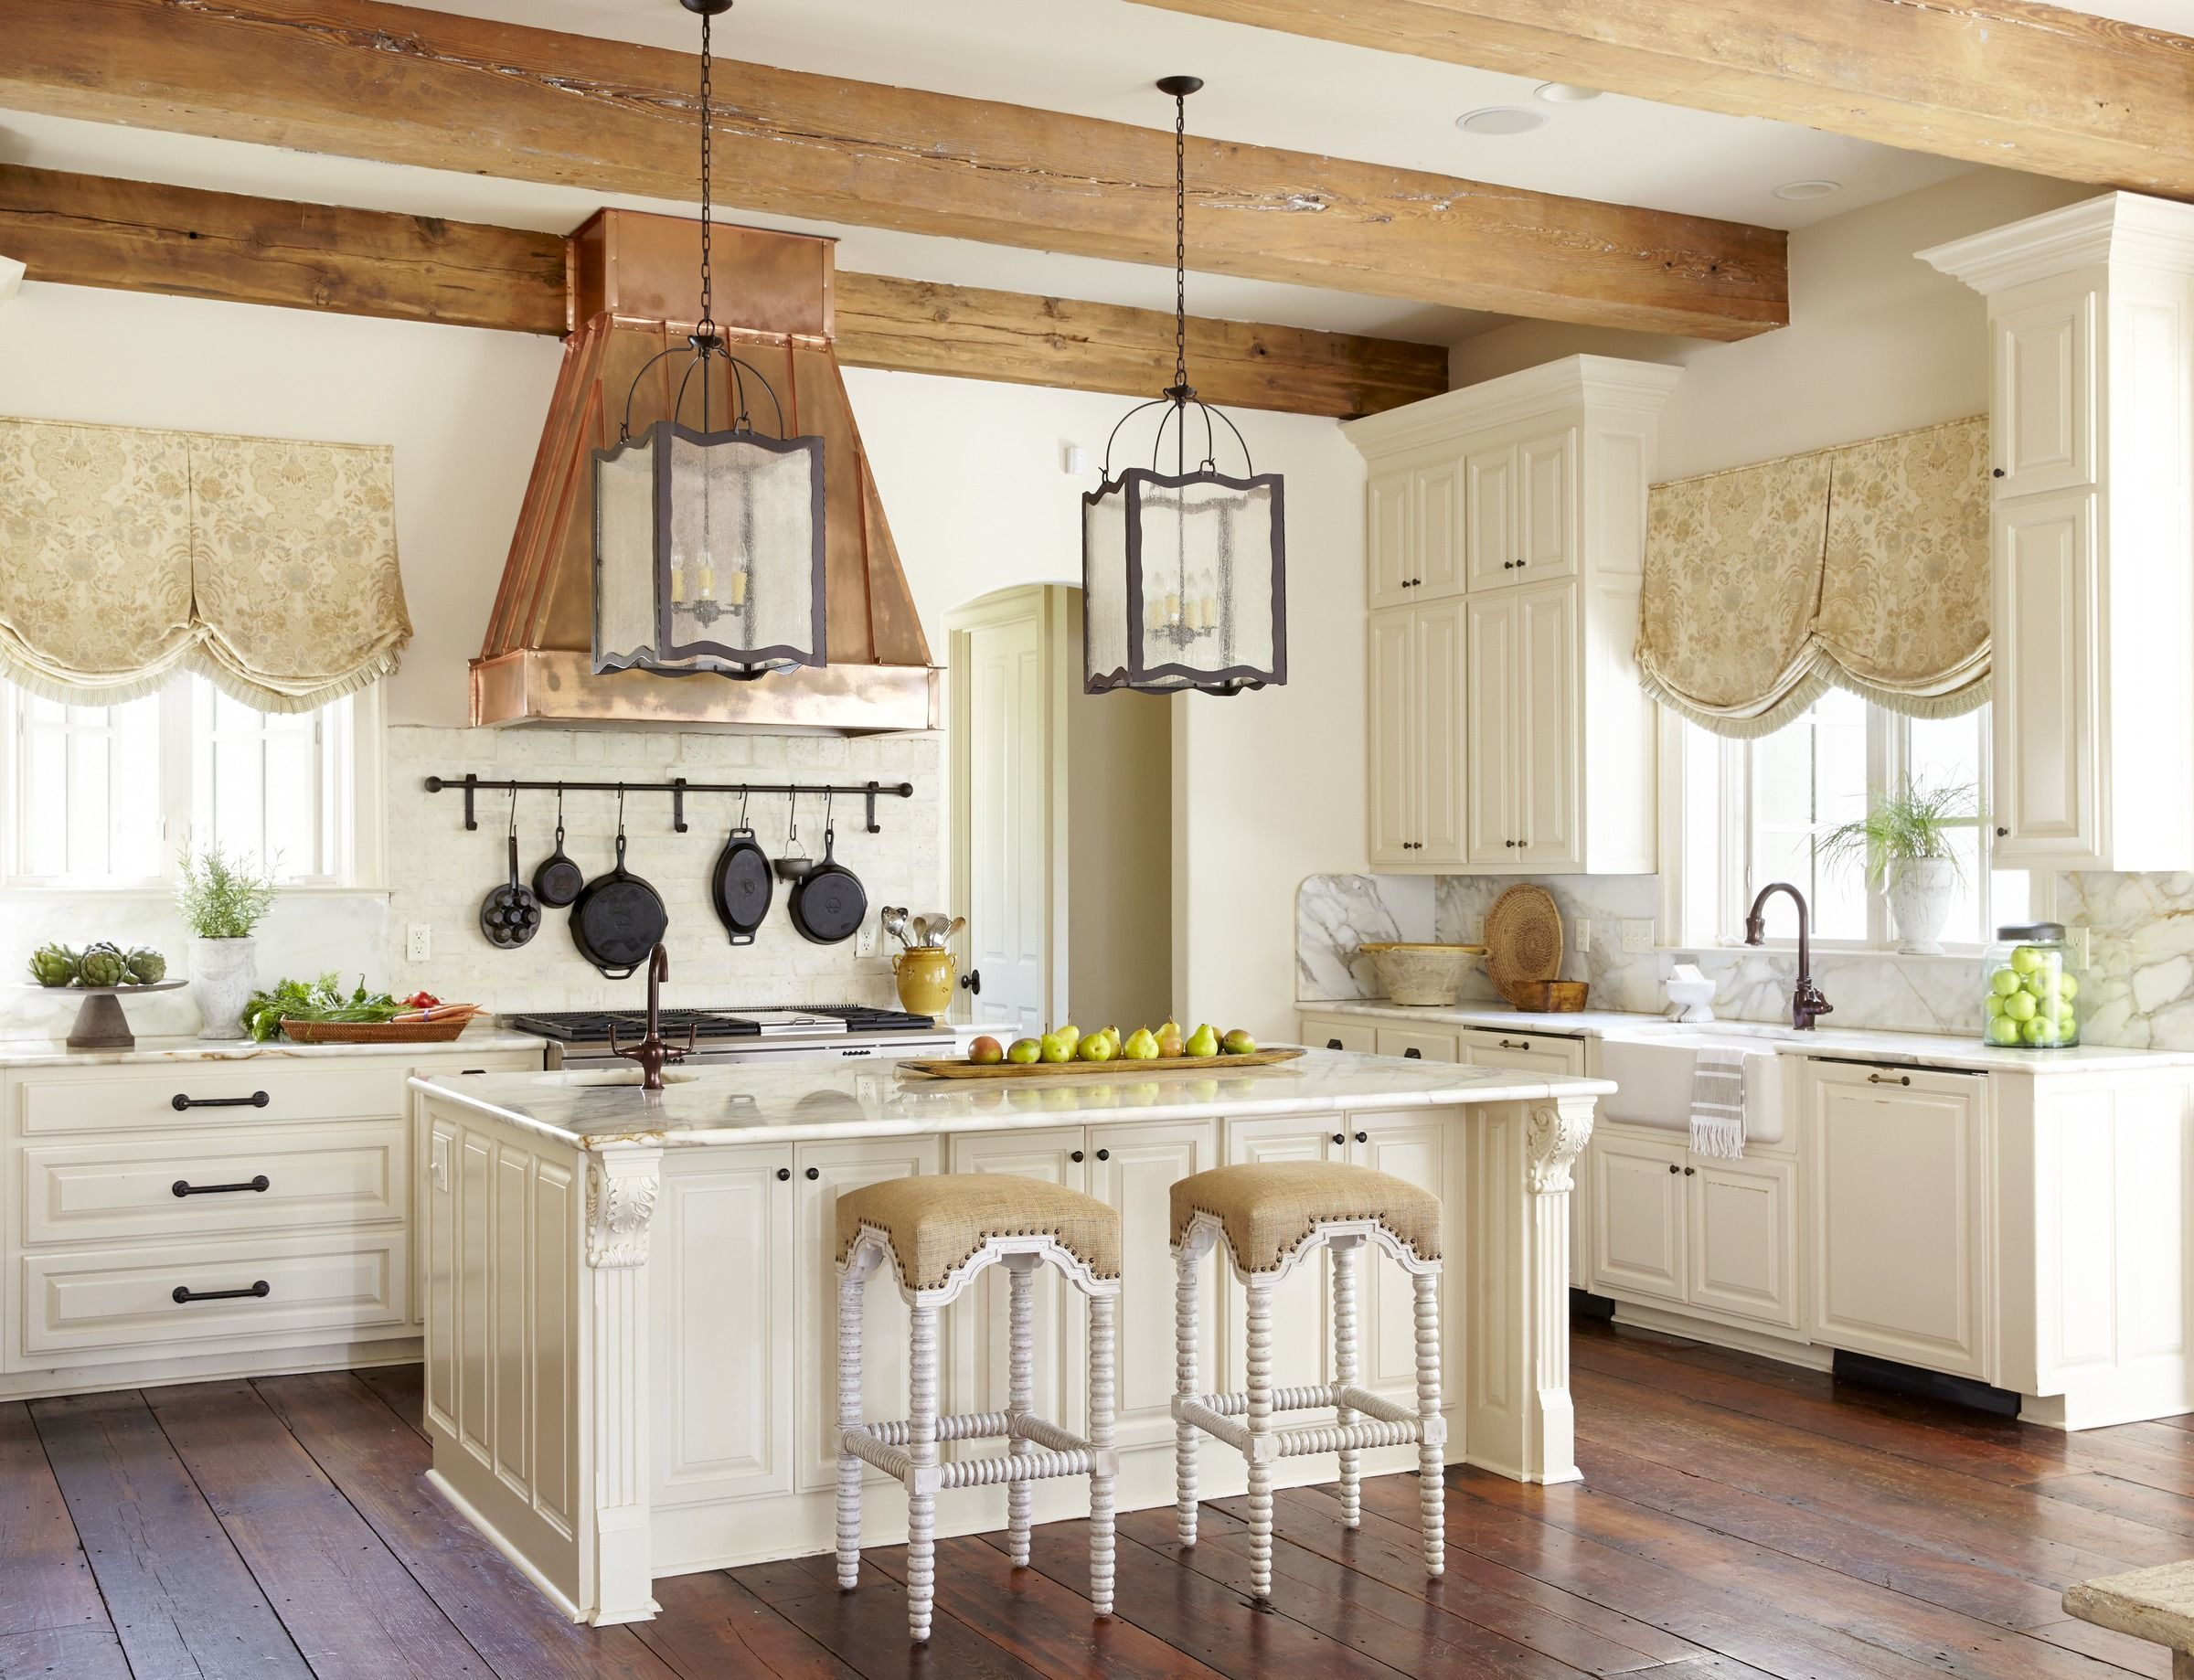 Diy Country Kitchen Ideas Countrykitchenideasforsmall Country Style Kitchen Country Kitchen Cabinets Country Kitchen